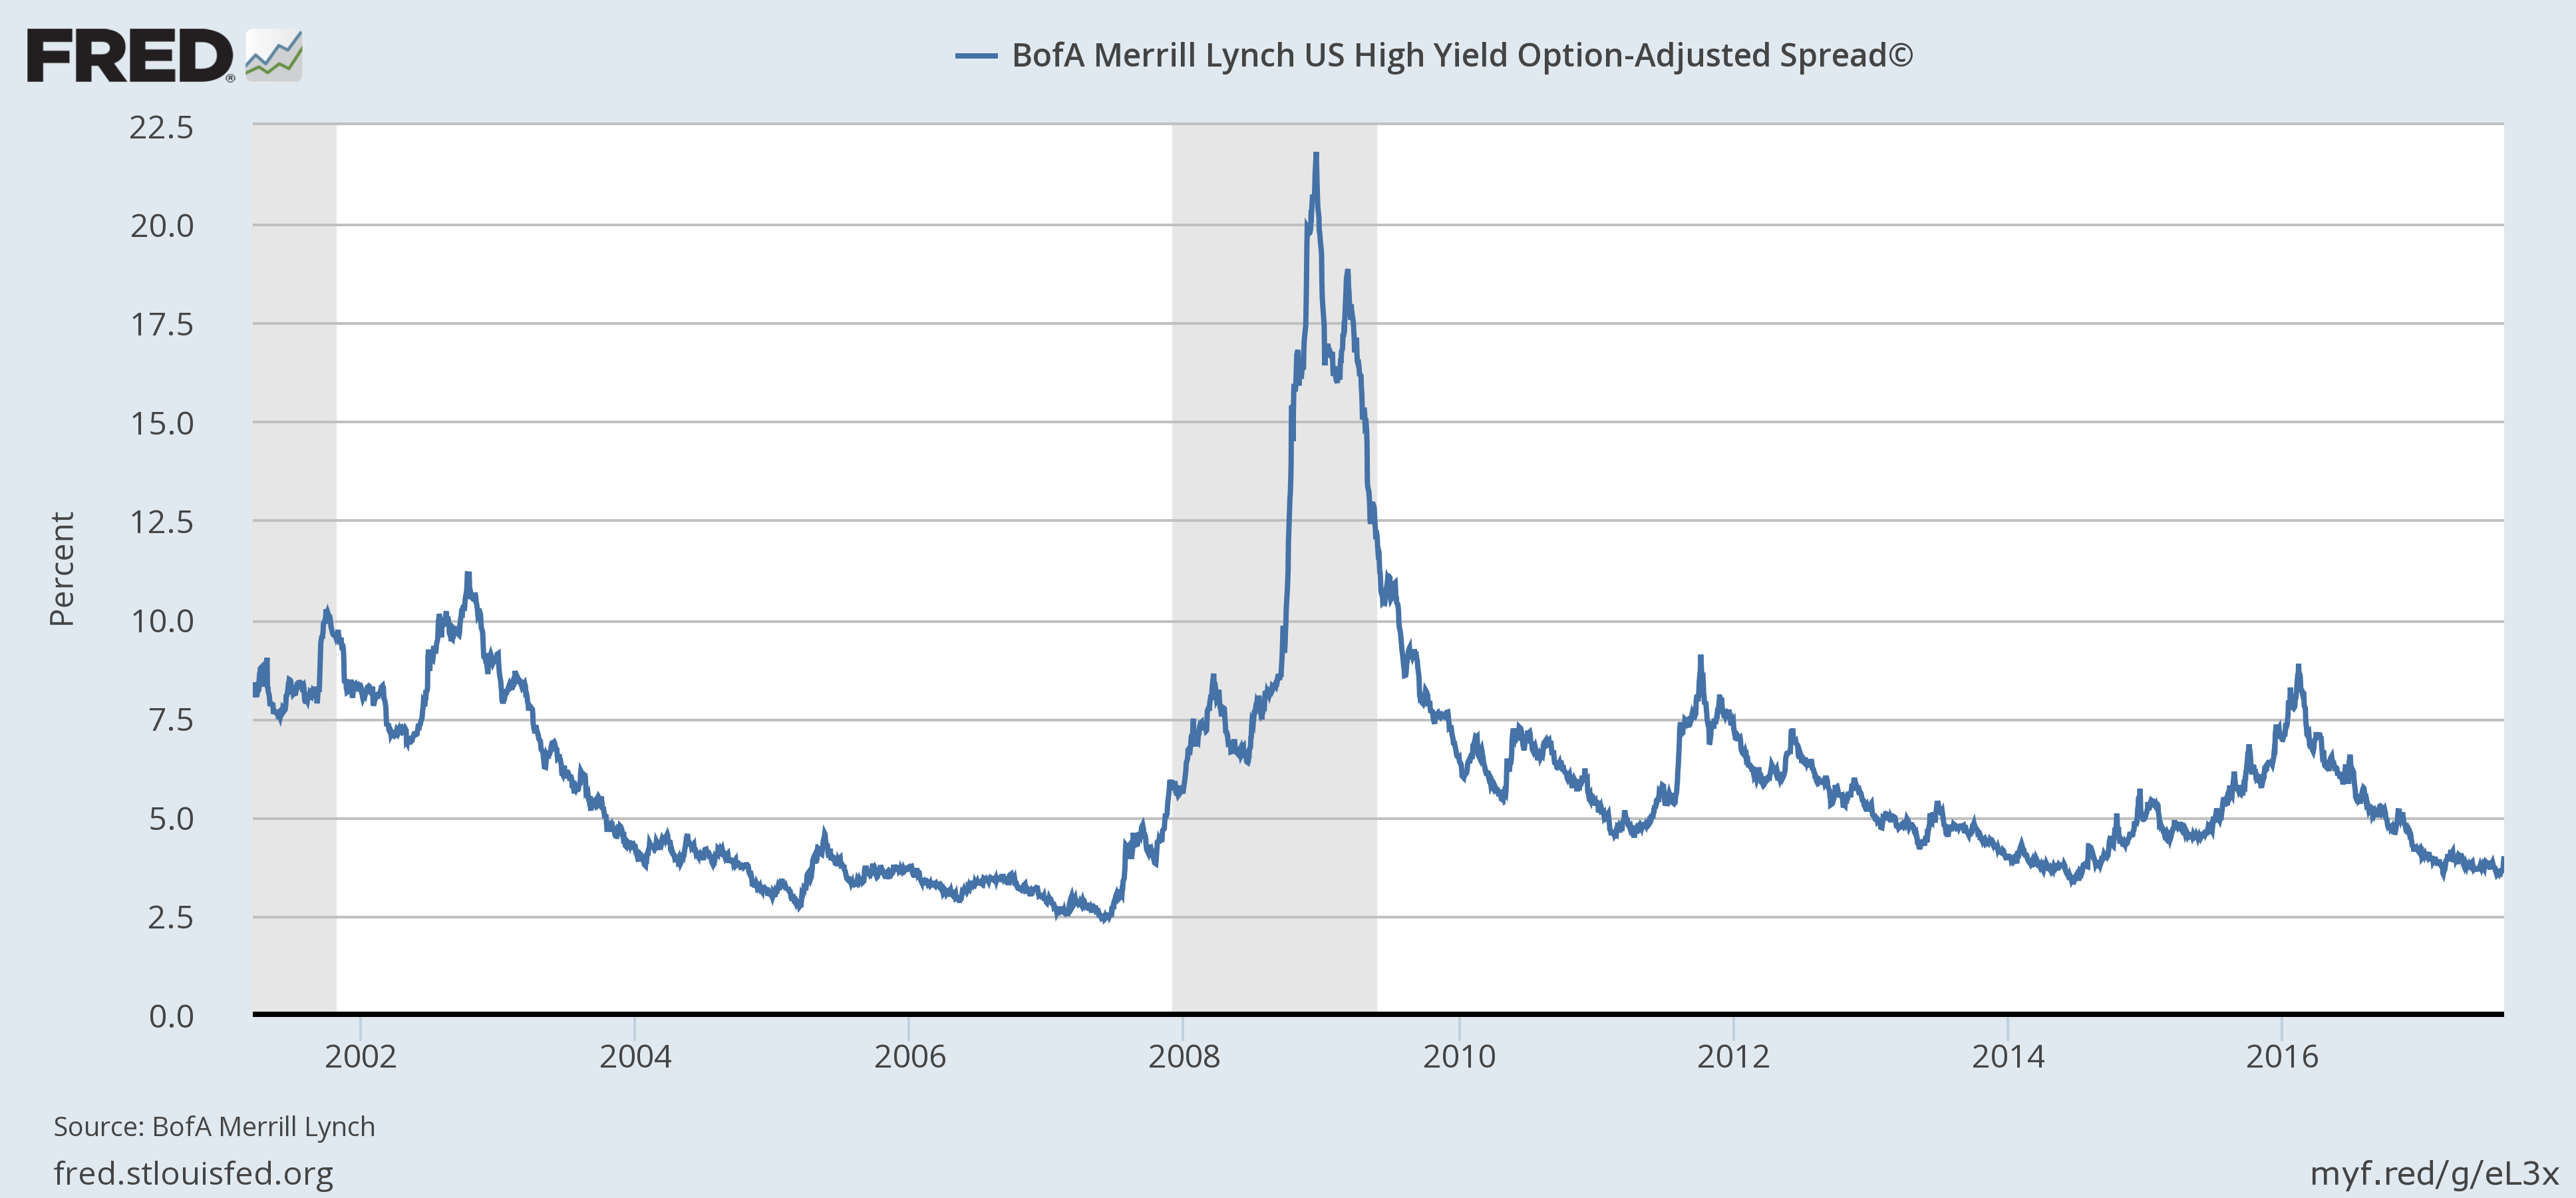 BofA Merrill Lynch US High Yield Option-Adjusted Spread, 2002 - 2017